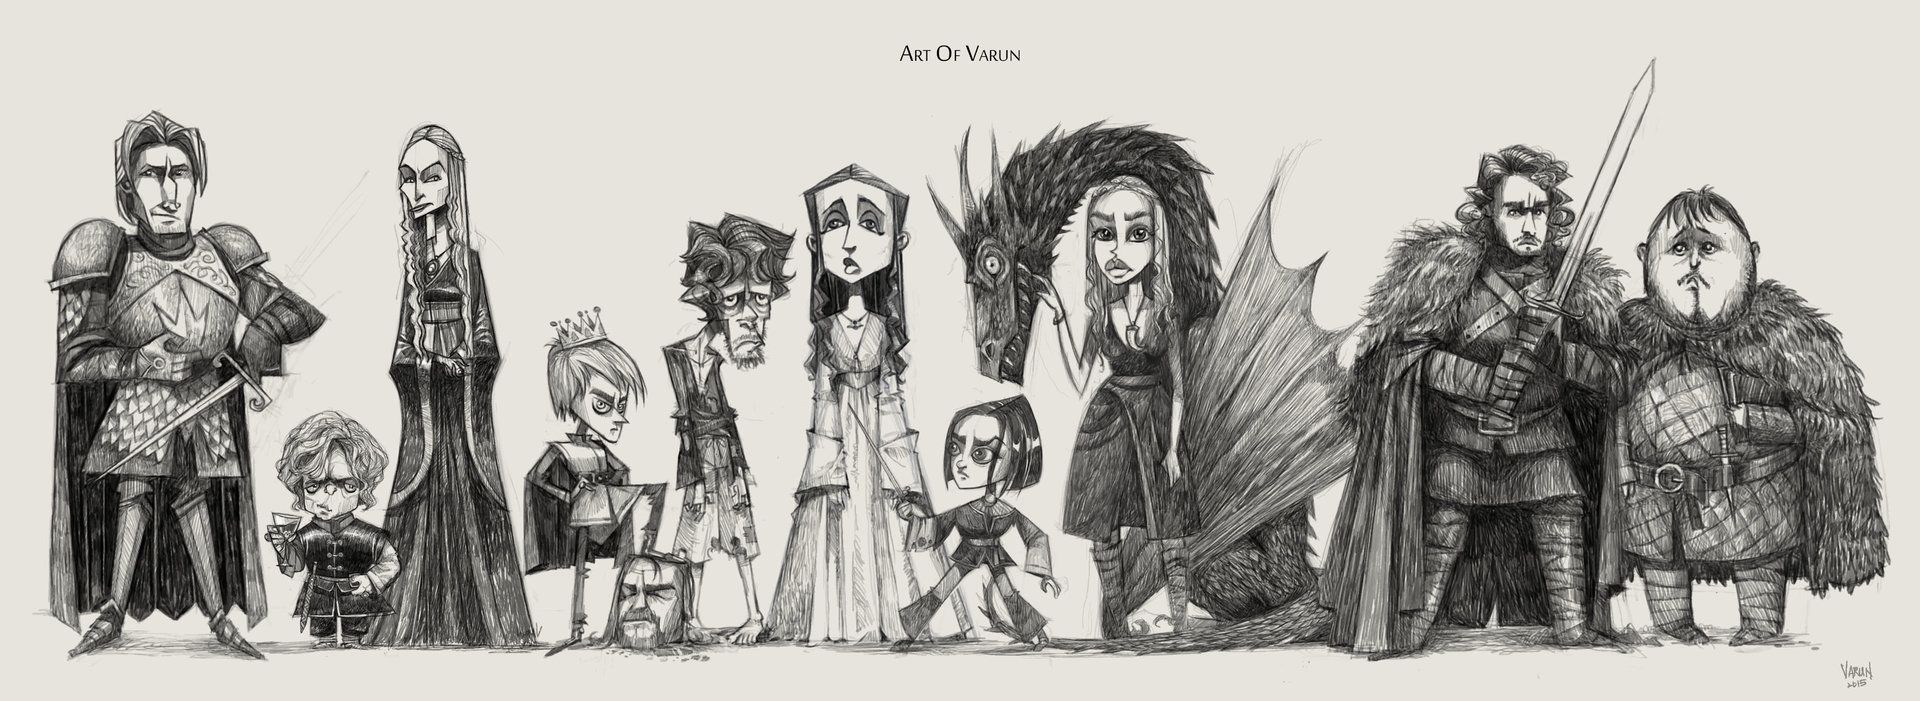 ArtStation - Game of Thrones Character Lineup, Varun Nair